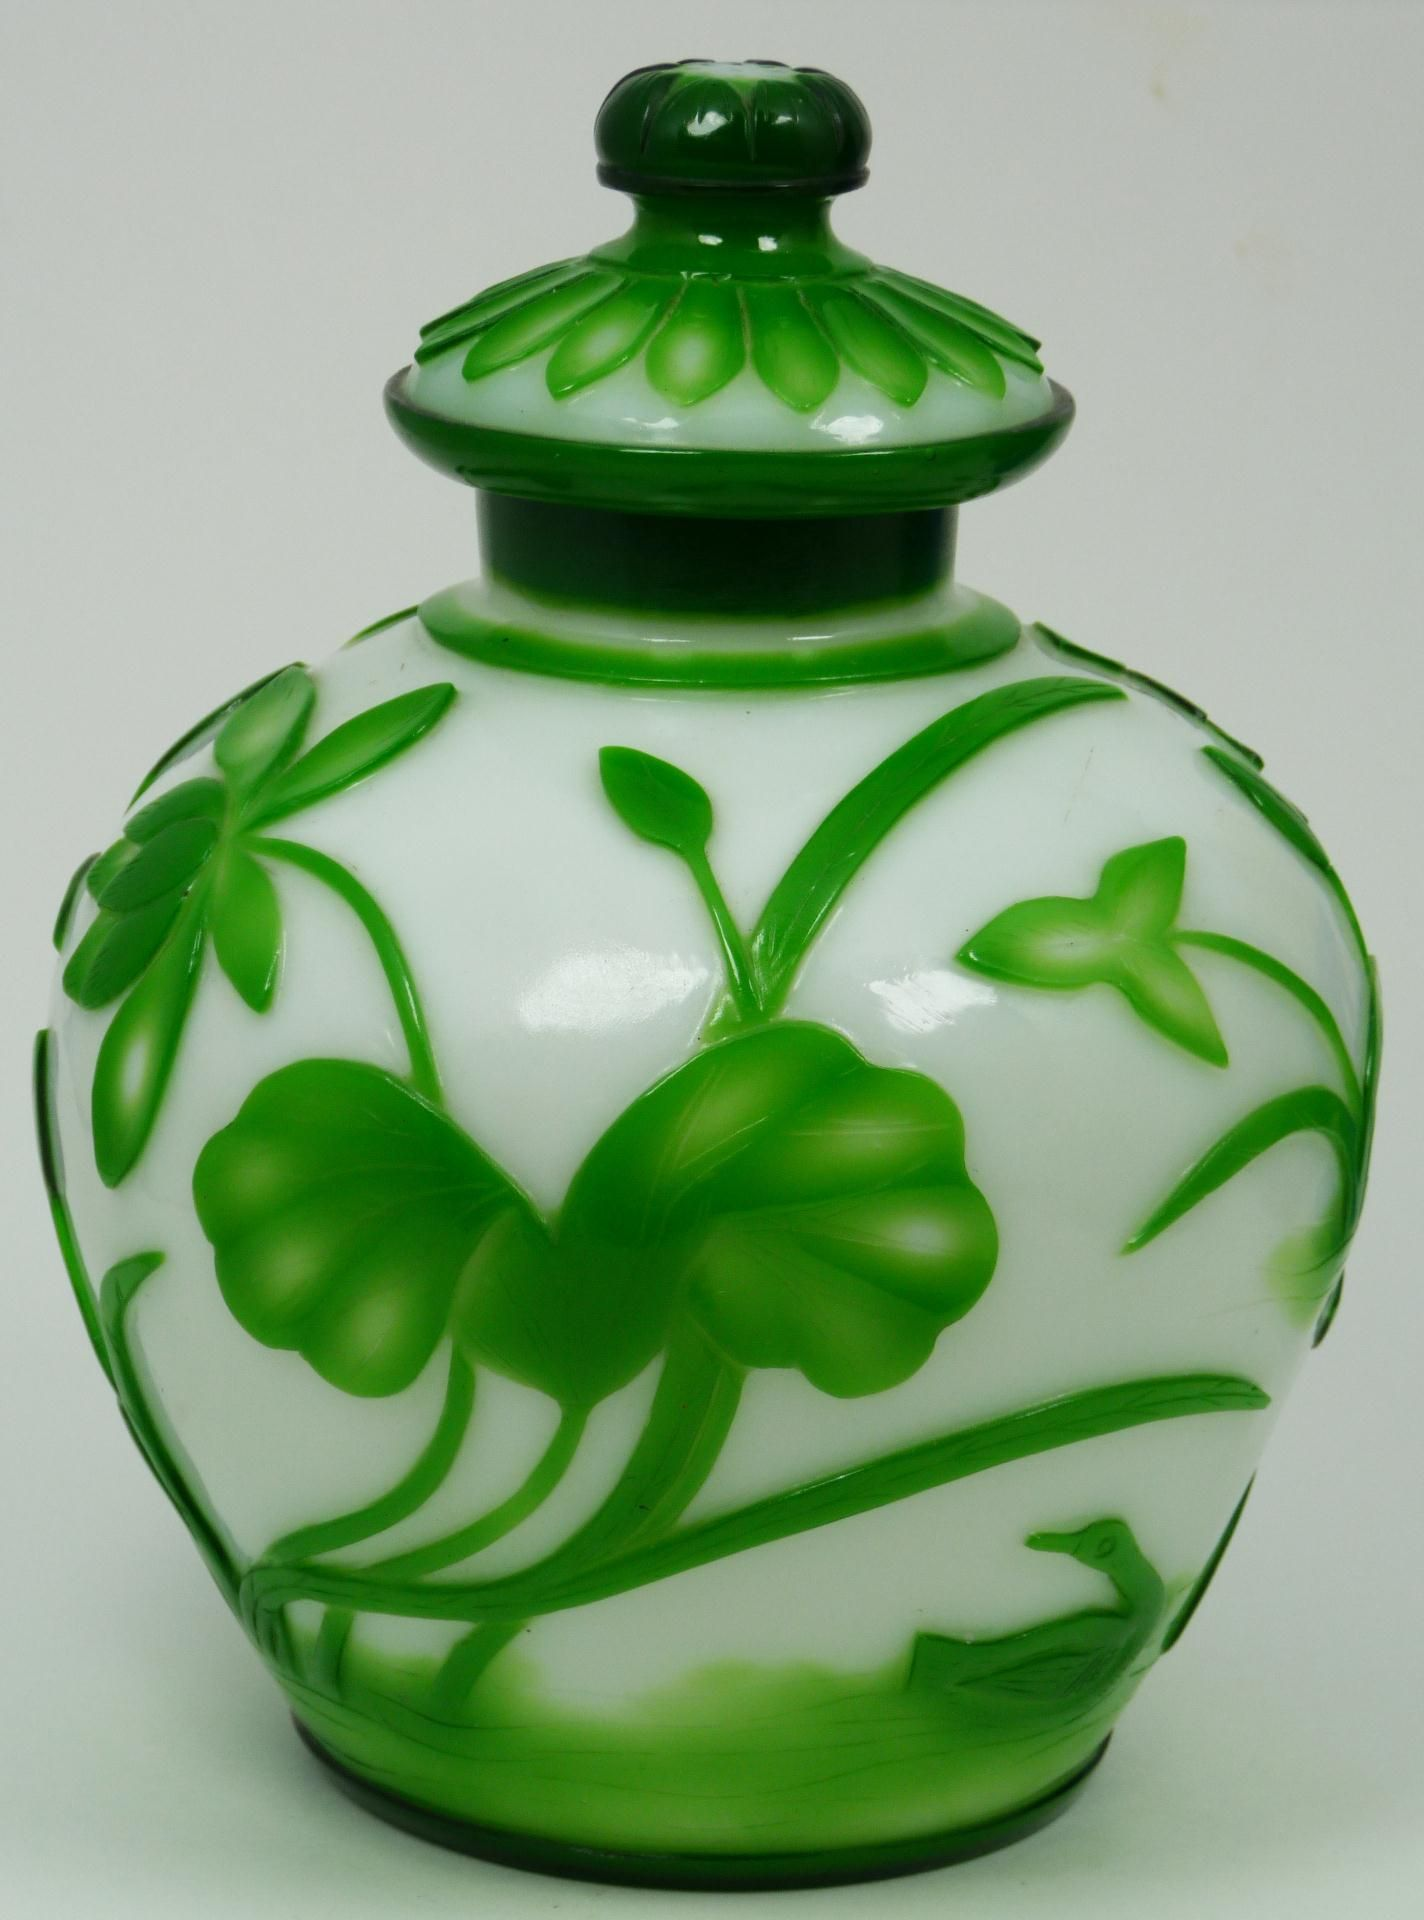 Chinese Antique Ching Dynasty White And Green Peking Gl Covered Ginger Jar With Raised Fl Duck Designs Throughout Exterior